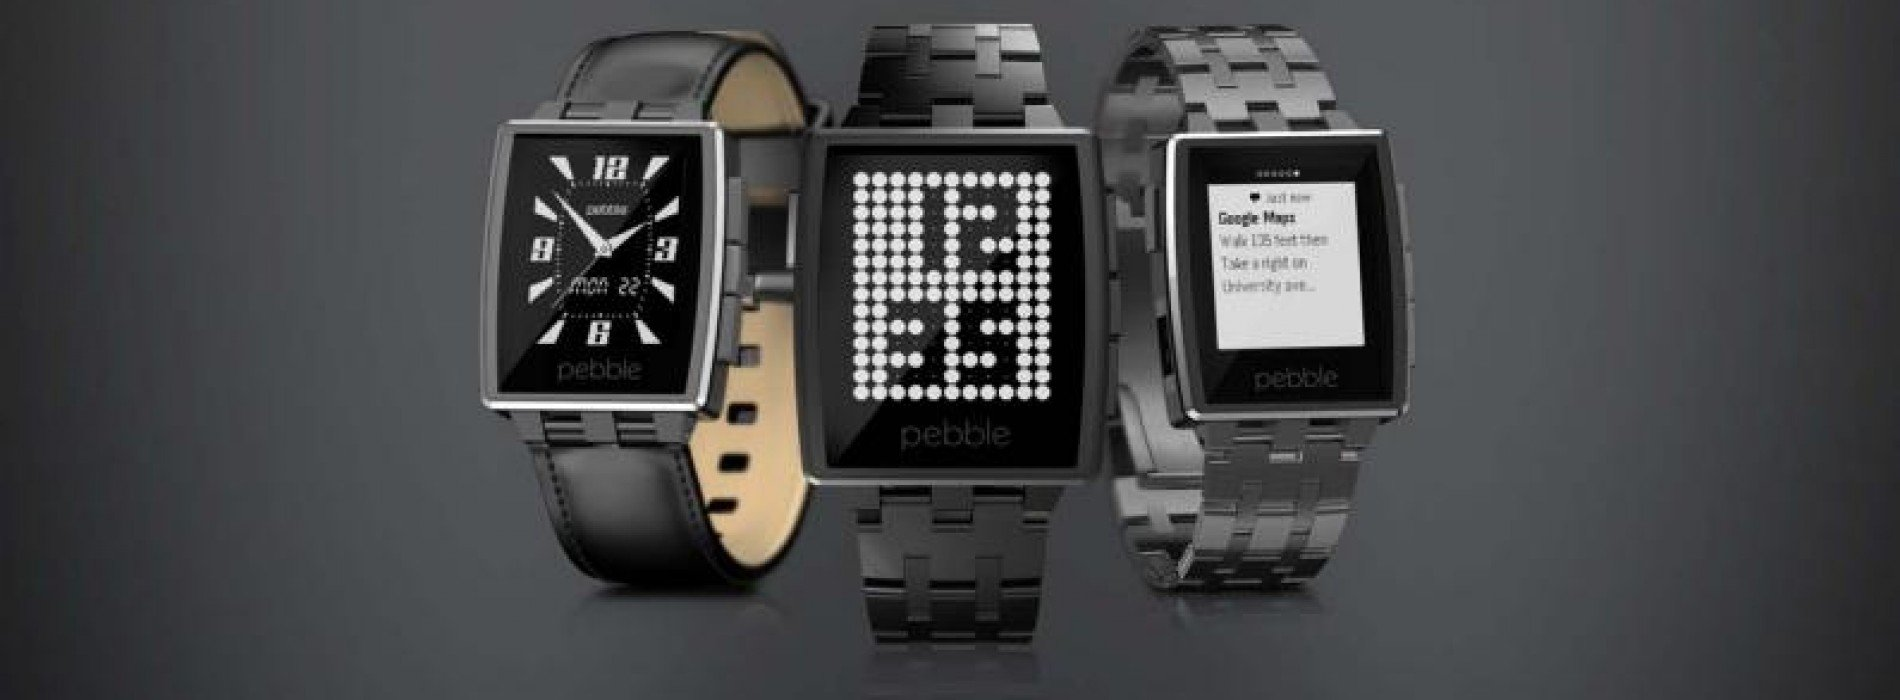 Pebble announces the Pebble Steel – a revamped version of their first generation smartwatch